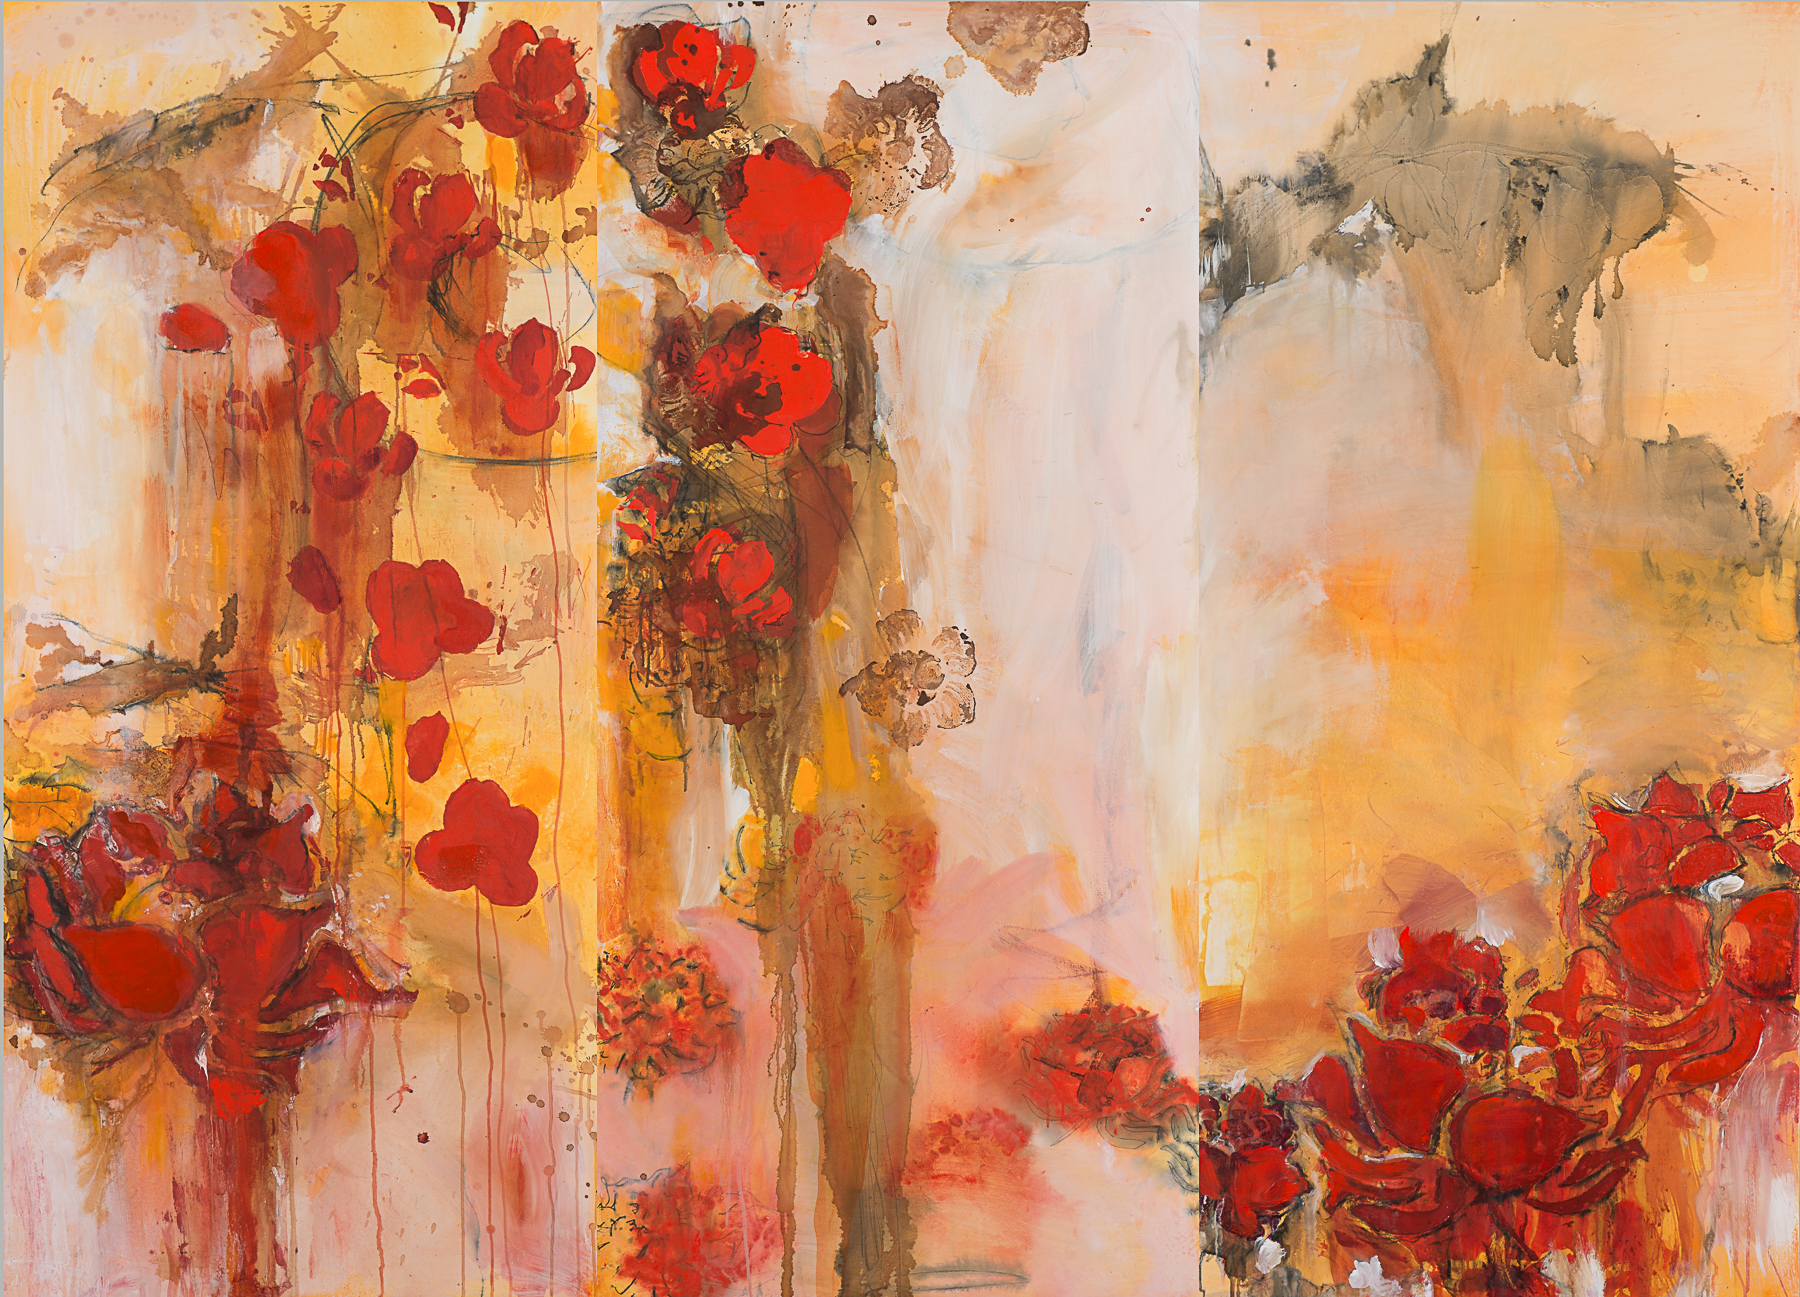 Diane Williams_The Three Graces triptych_acrylic, rust, gesso and Stabilo on canvas_2018.jpg